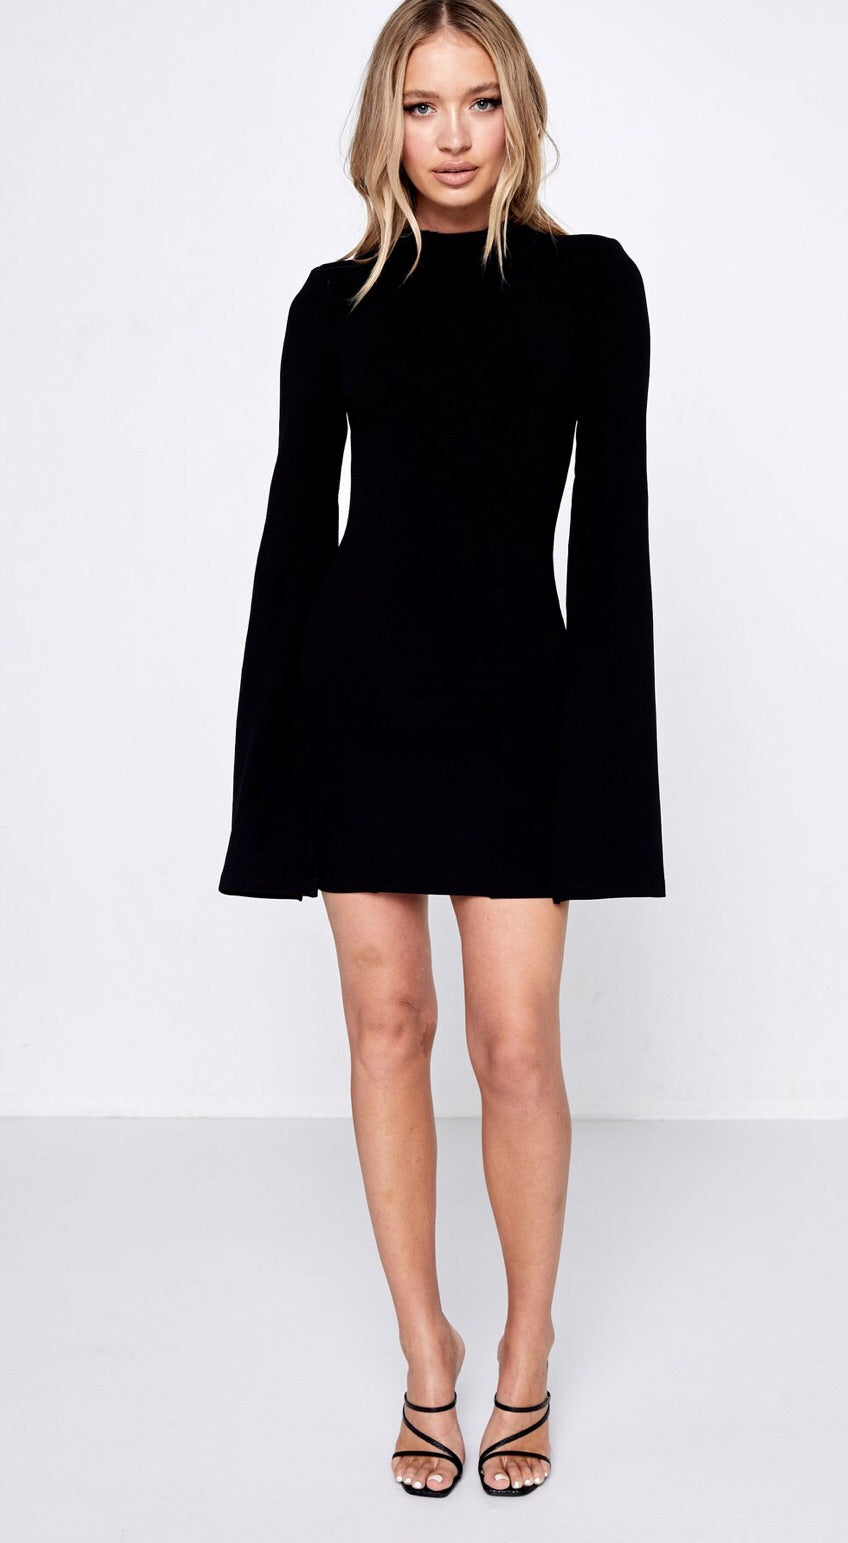 Limelight Dress - Black